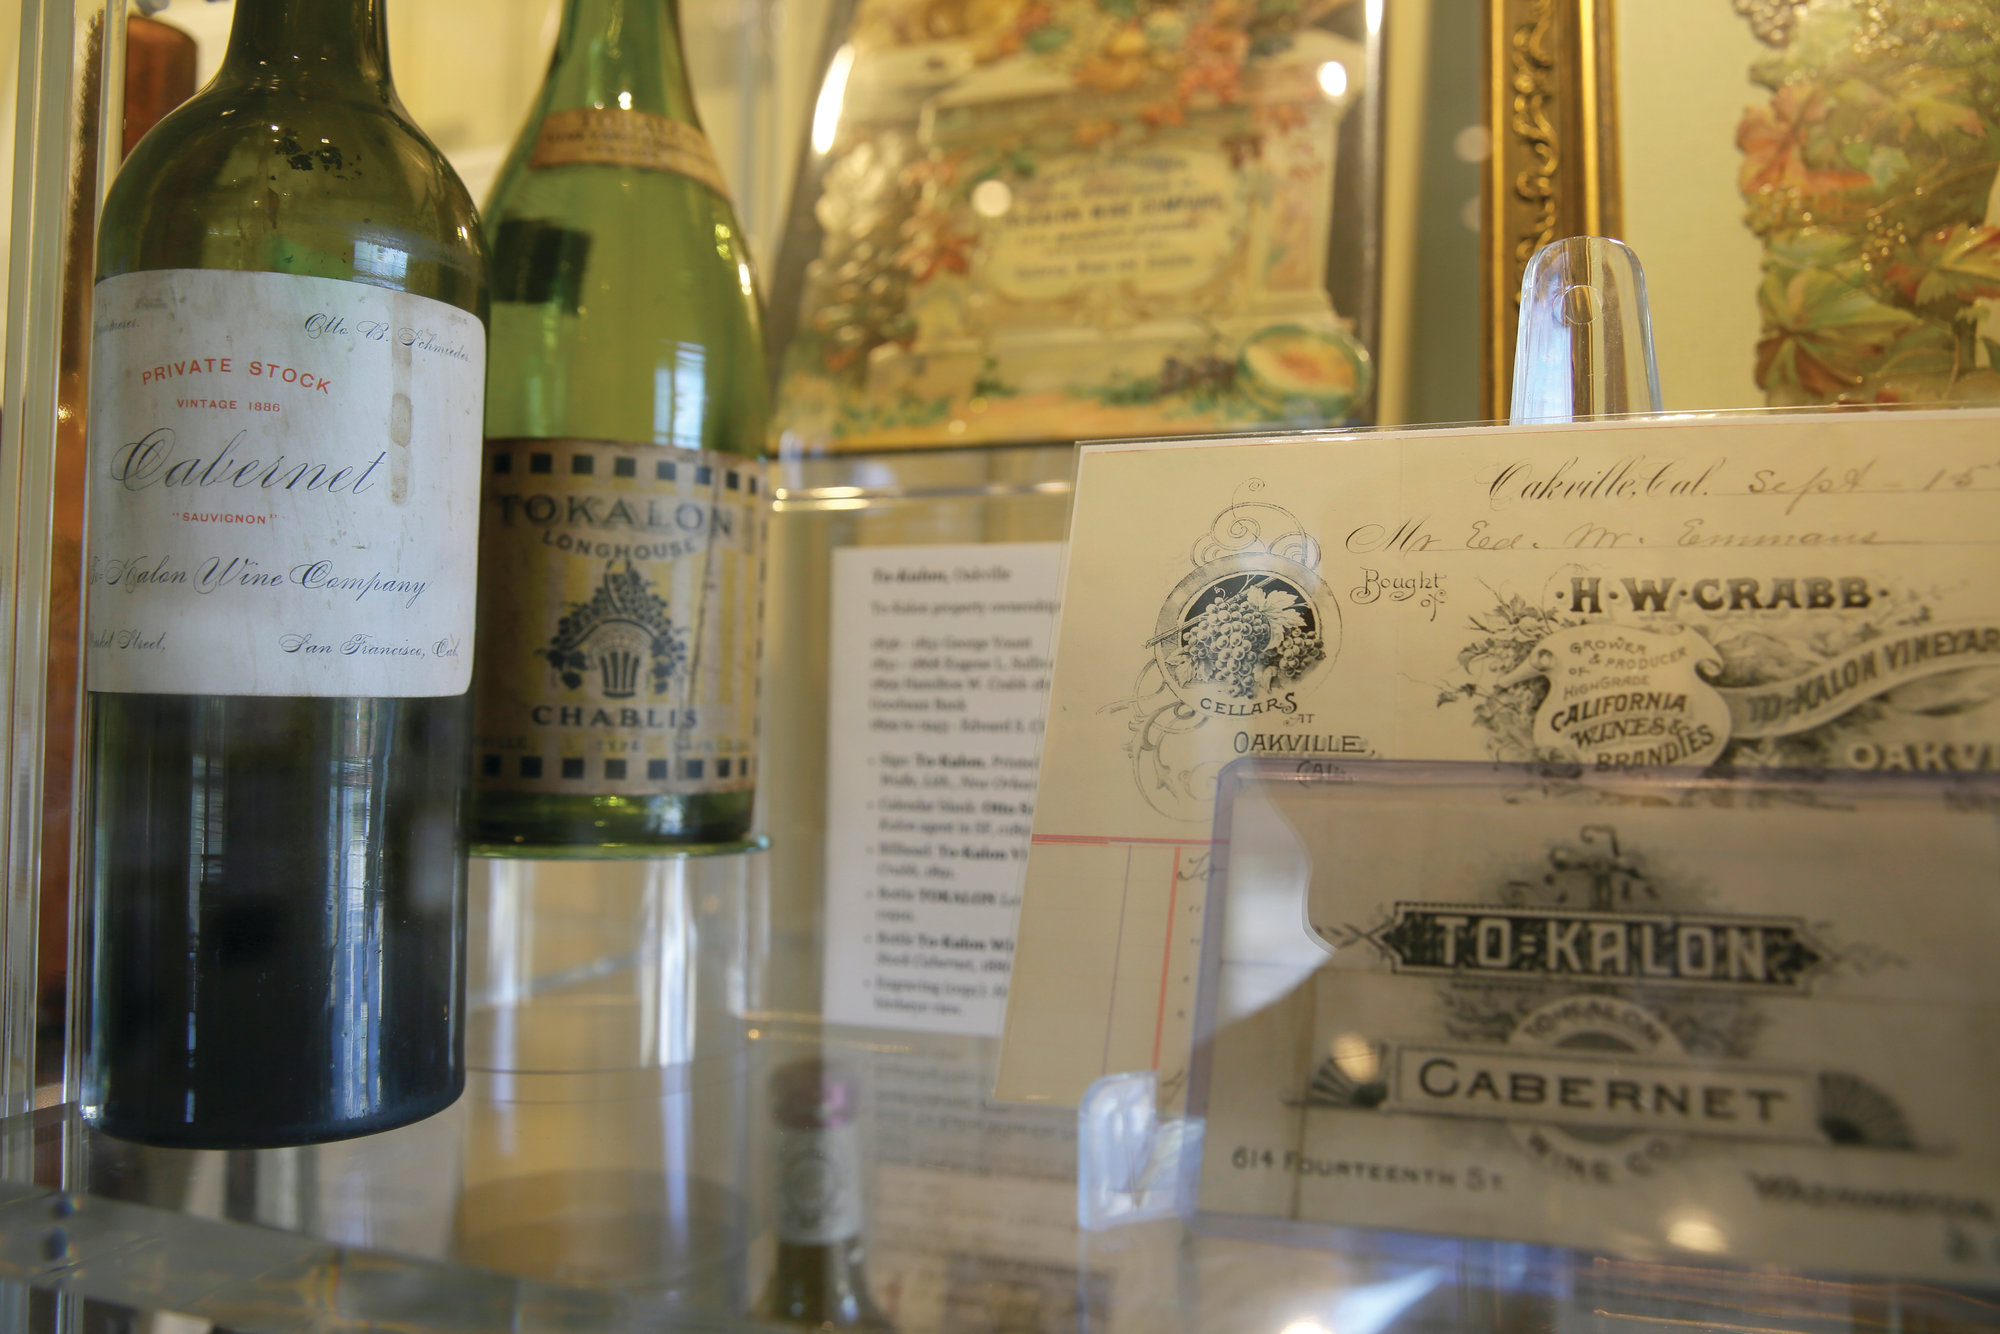 A display about the historic To Kalon Vineyard at 1881 Napa is seen.